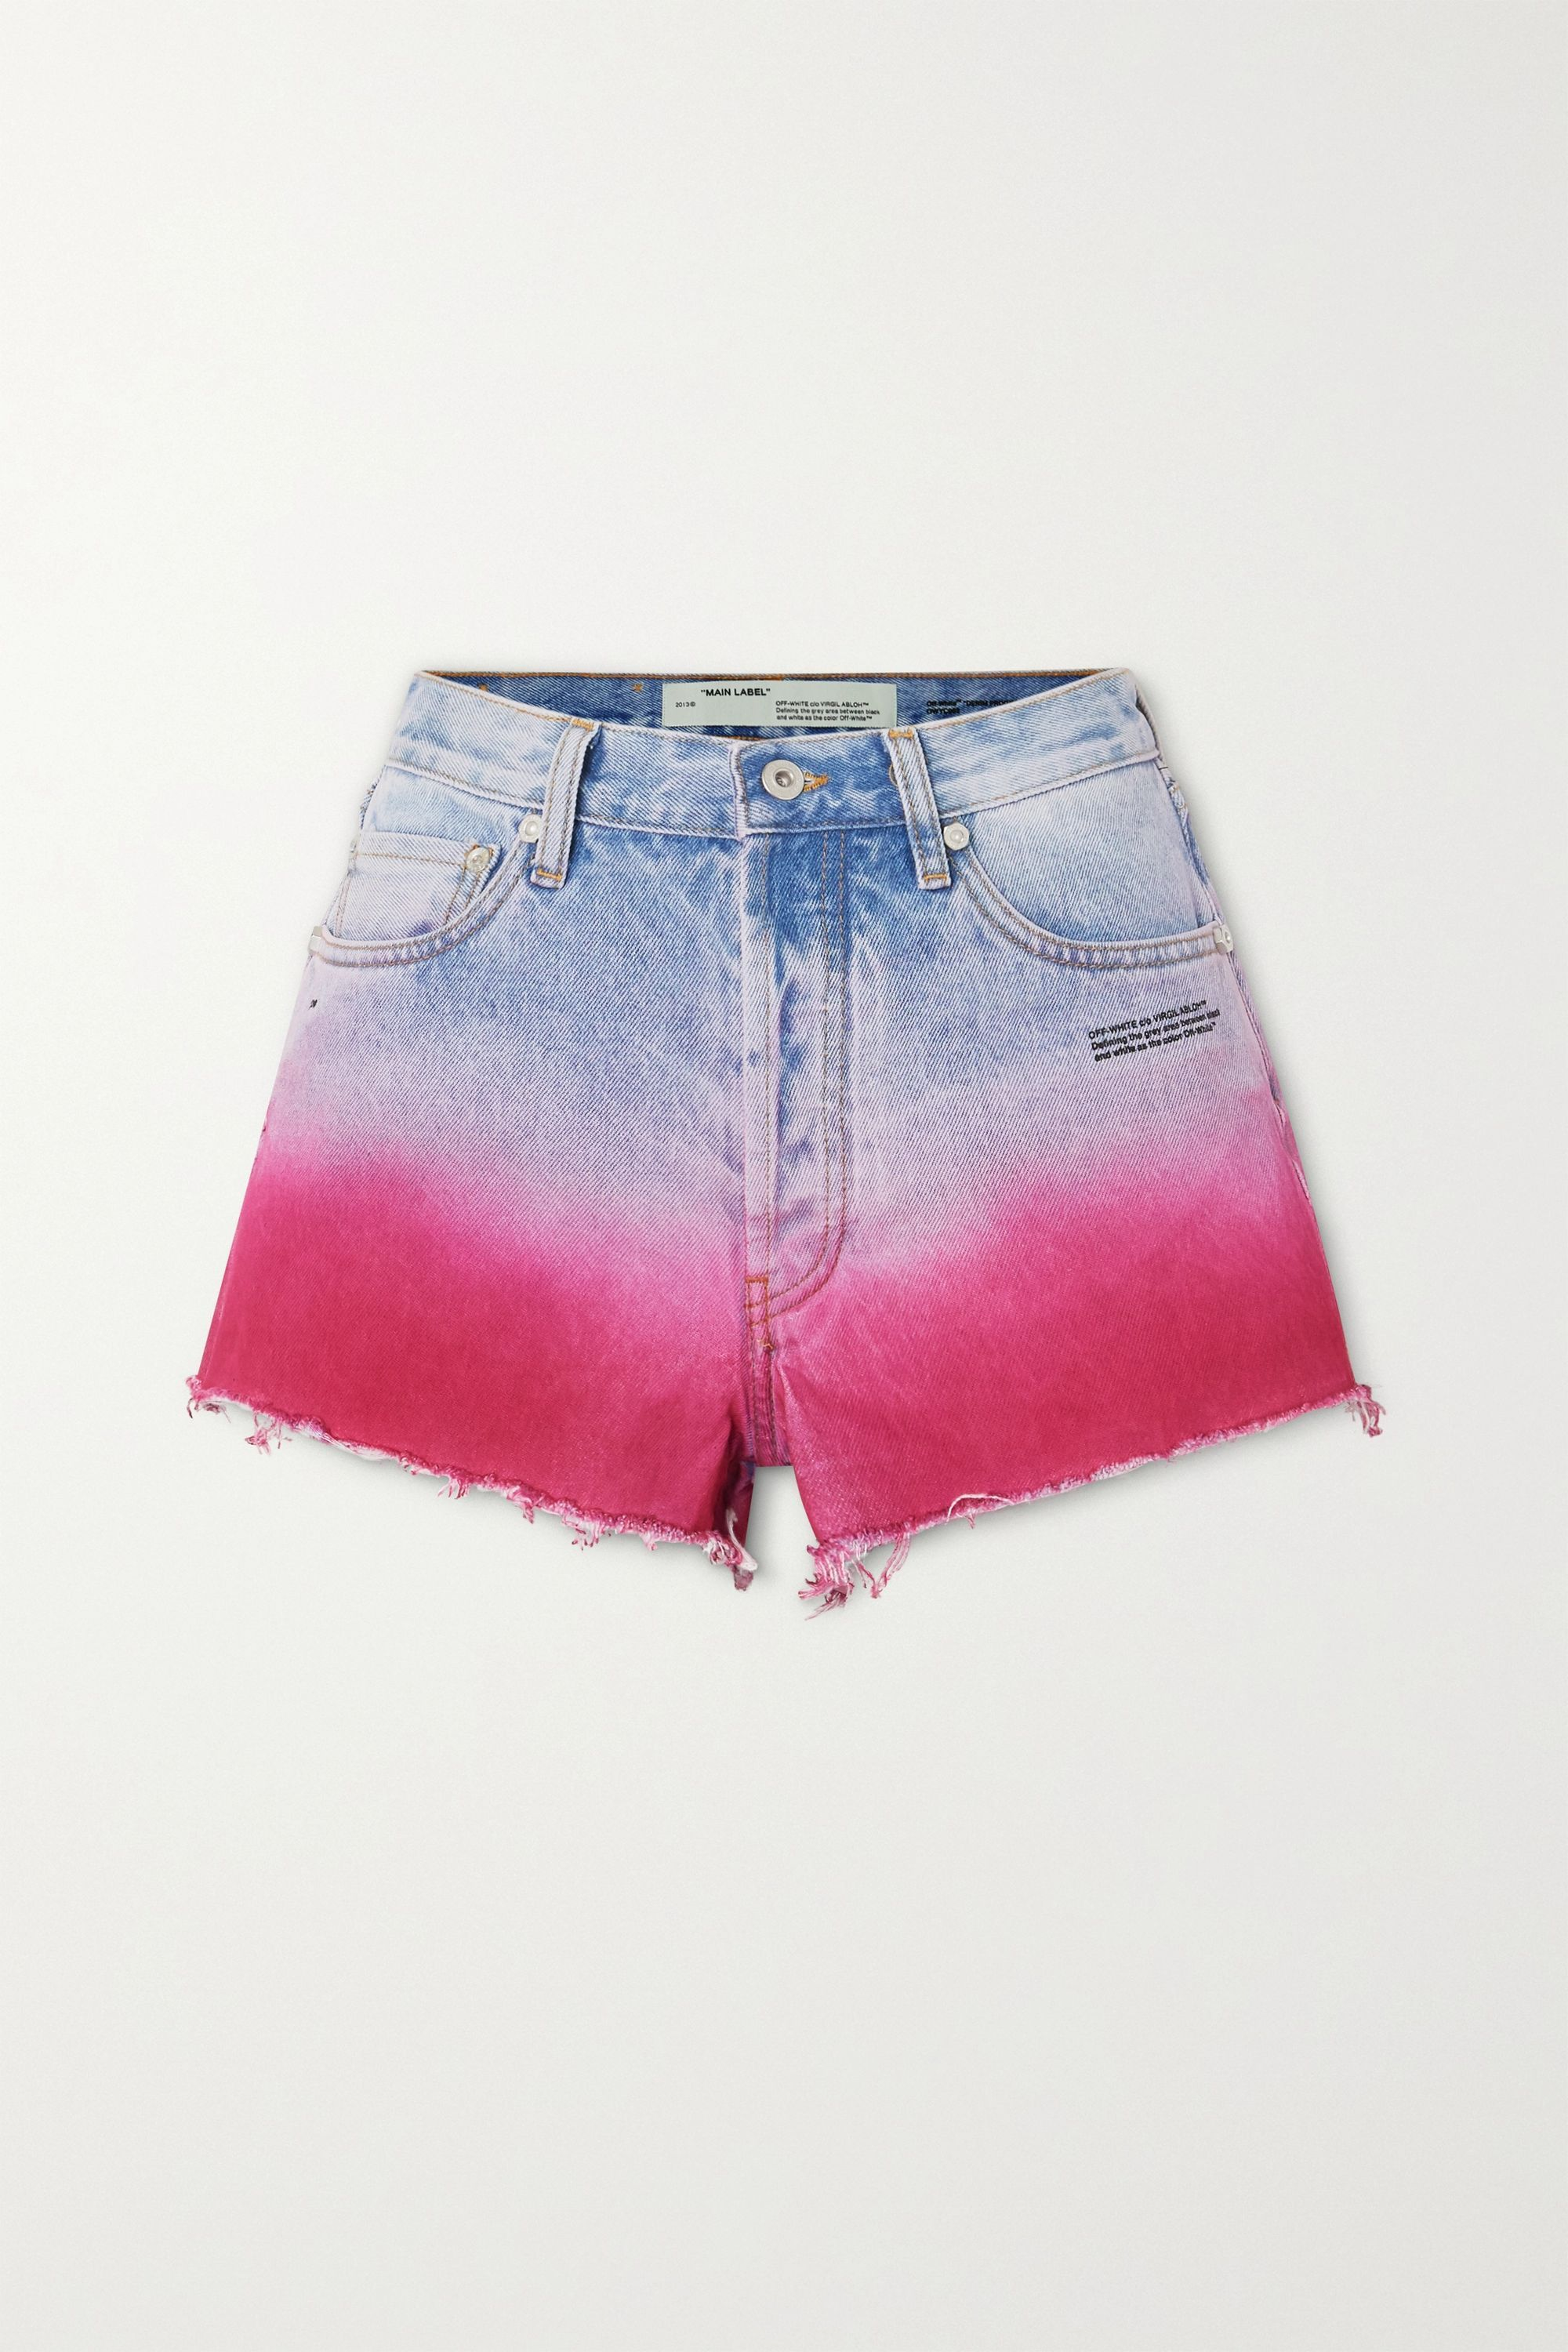 15 Best Denim Shorts For Women Jean Shorts For Grown Ups See more ideas about women, fashion, girl. ombre denim shorts